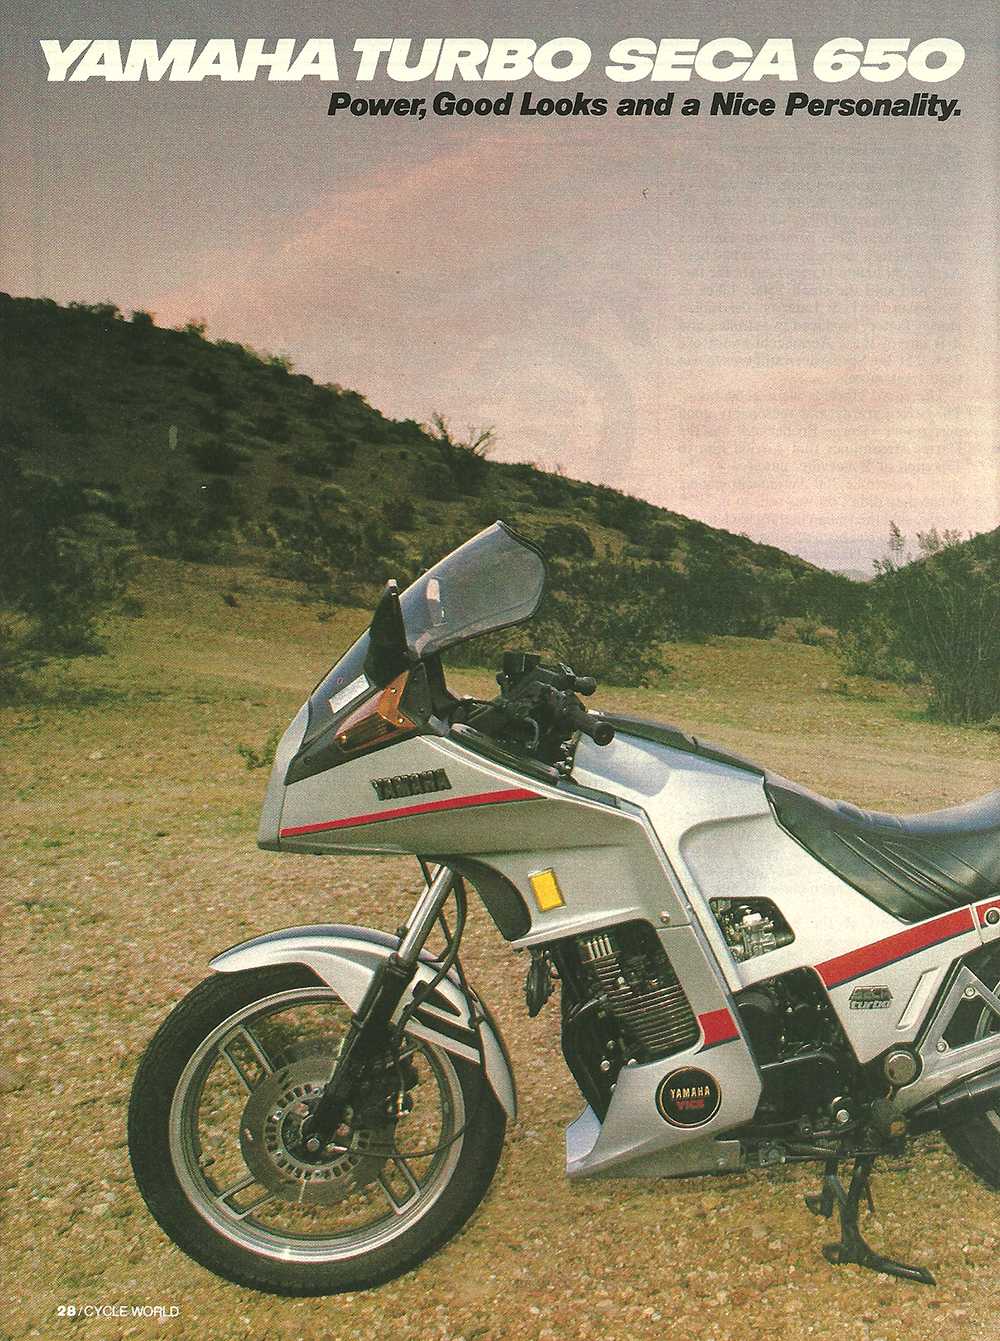 1982 Yamaha Turbo Seca 650 road test 01.jpg